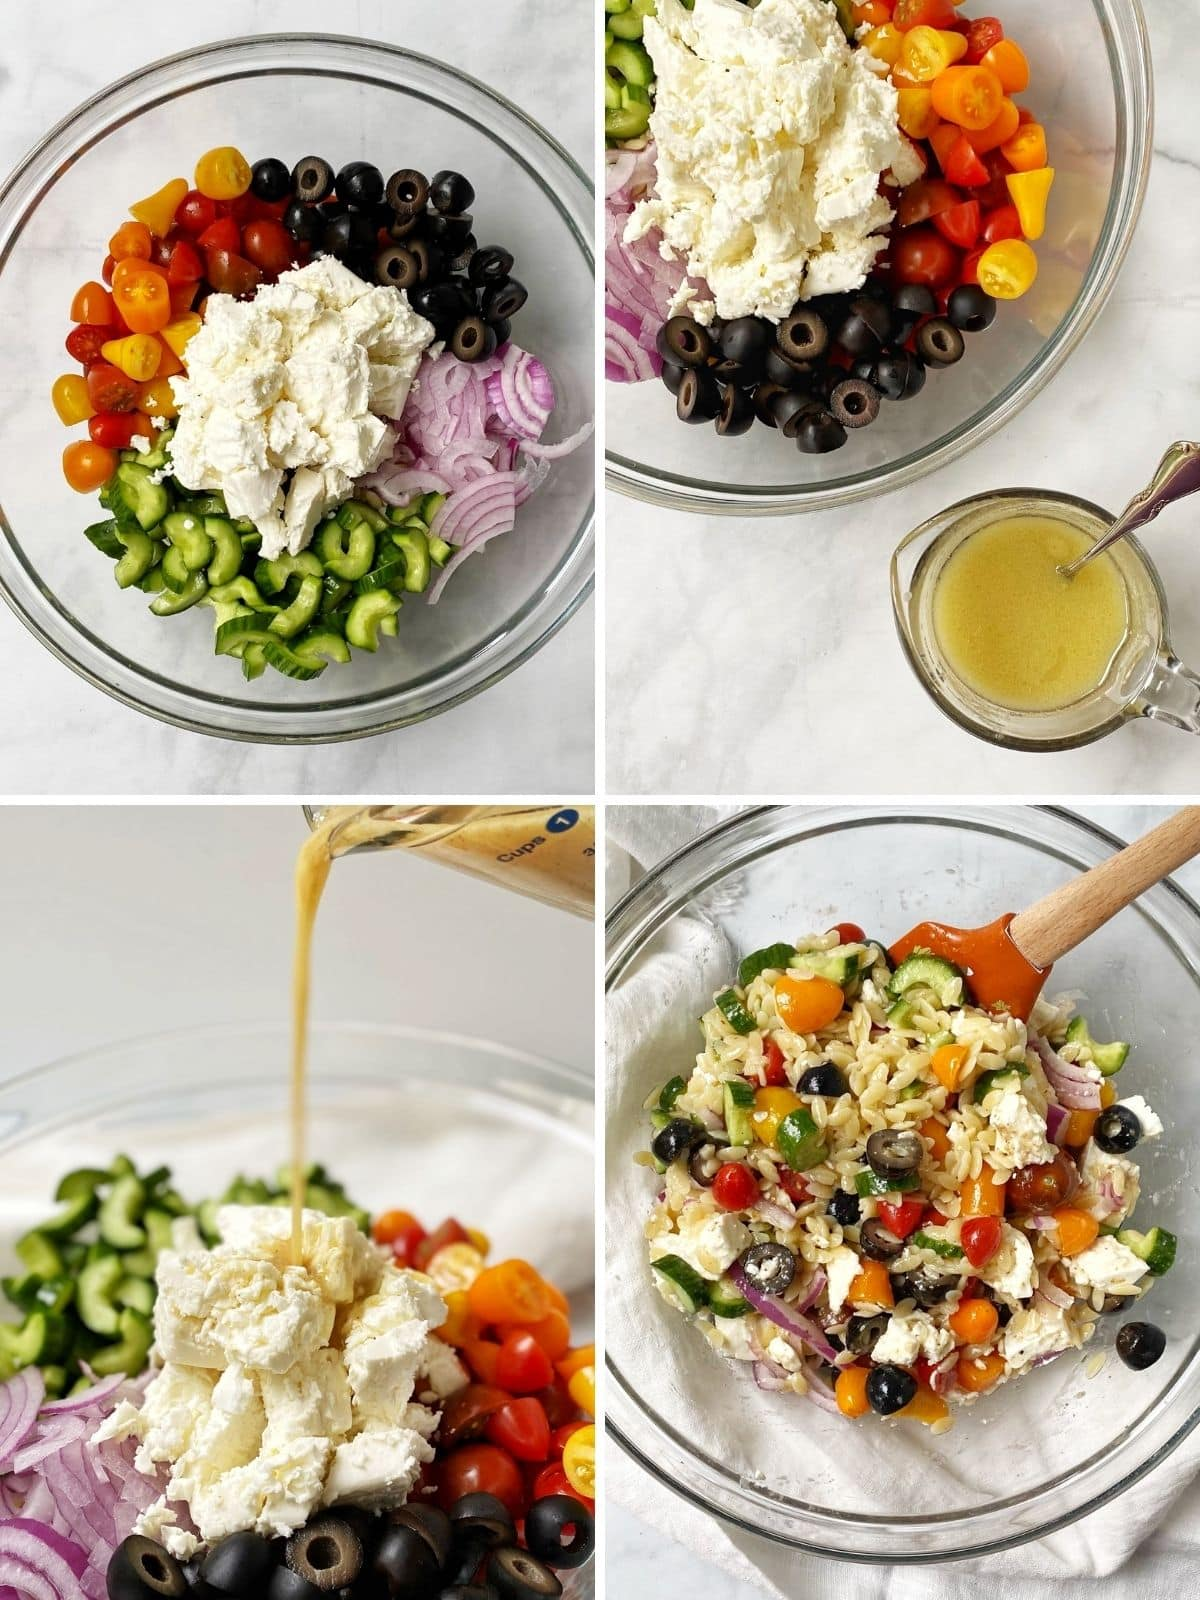 bowl of ingredients, cup of dressing next to bowl of ingredients, pouring the dressing over the salad, and a bowl of the salad mixed together